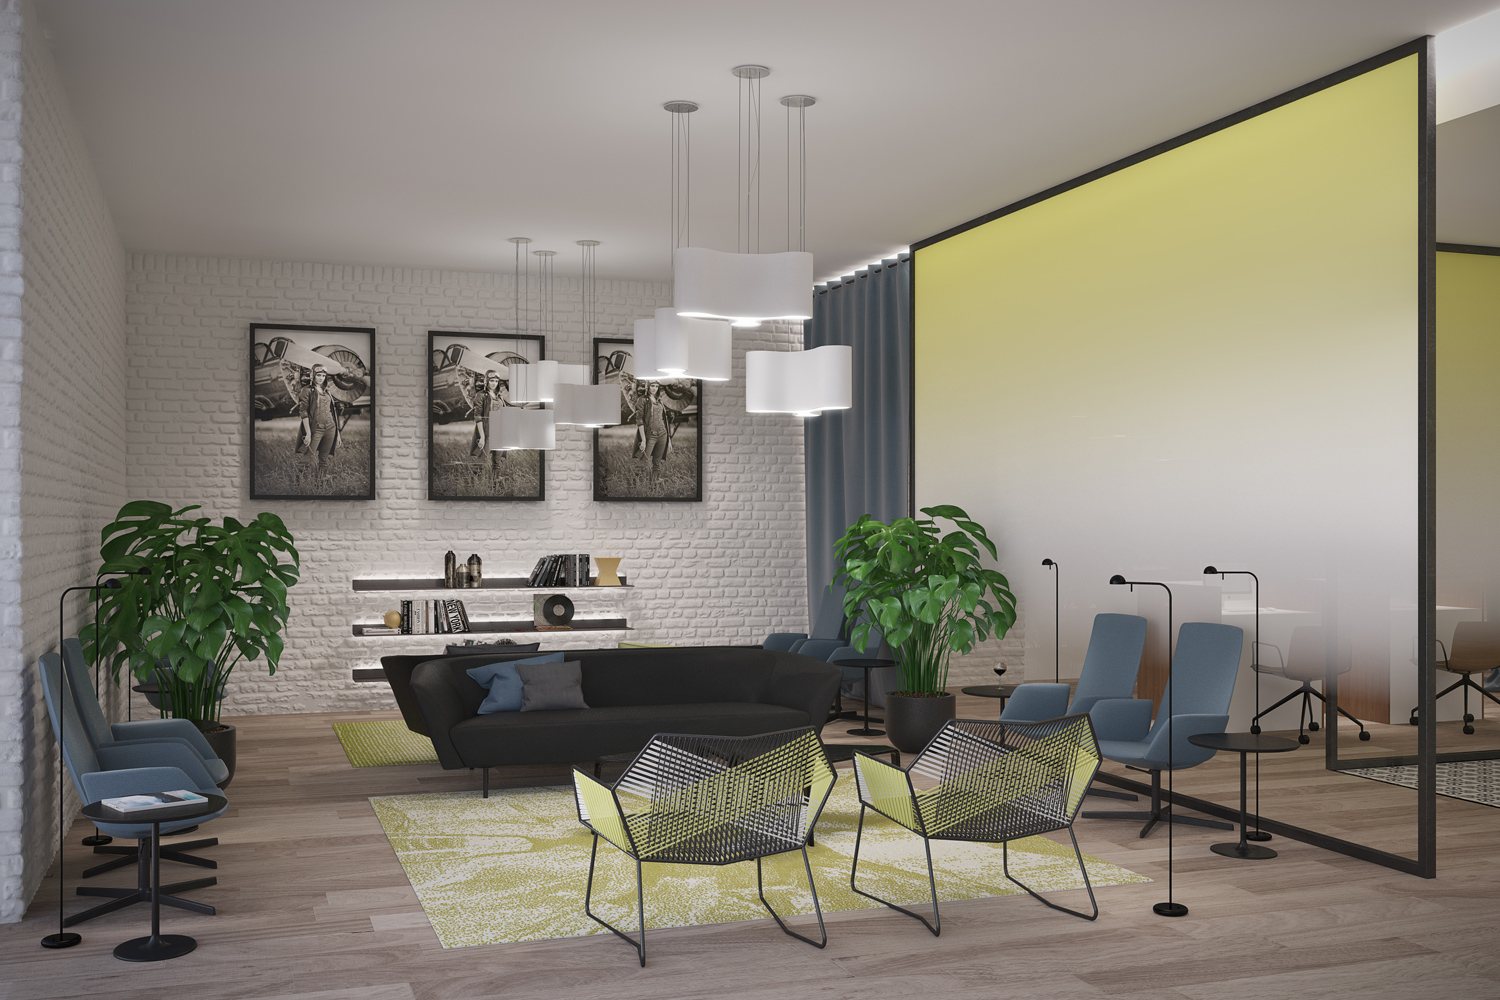 21-3D-RENDERING-INTERIOR-UP-TO-YOU-STUDIO